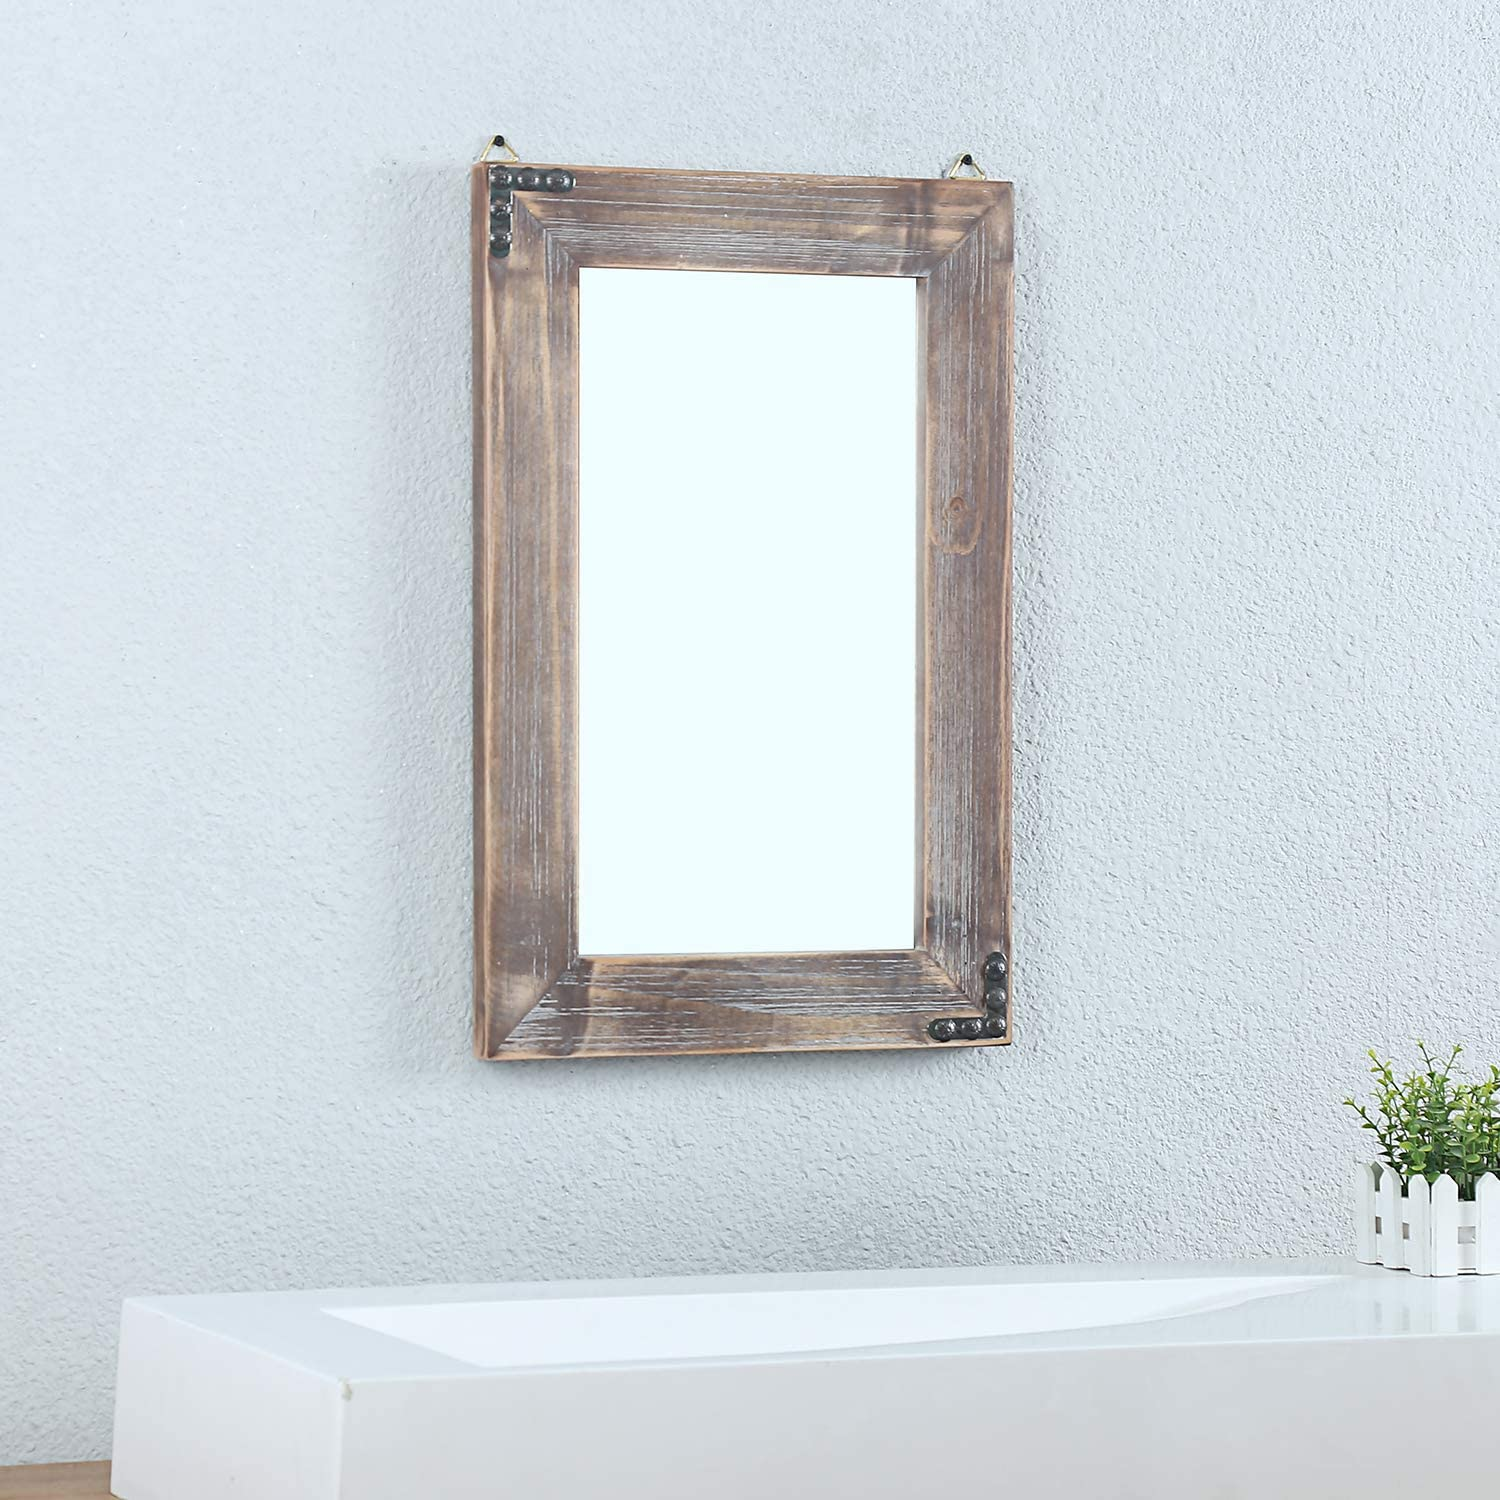 Amazon Com Womio Rustic Bathroom Mirrors For Wall 16 X 24 Wood Frame Hanging Decorative Wall Mirror Vanity Mirror Makeup Mirror Home Kitchen